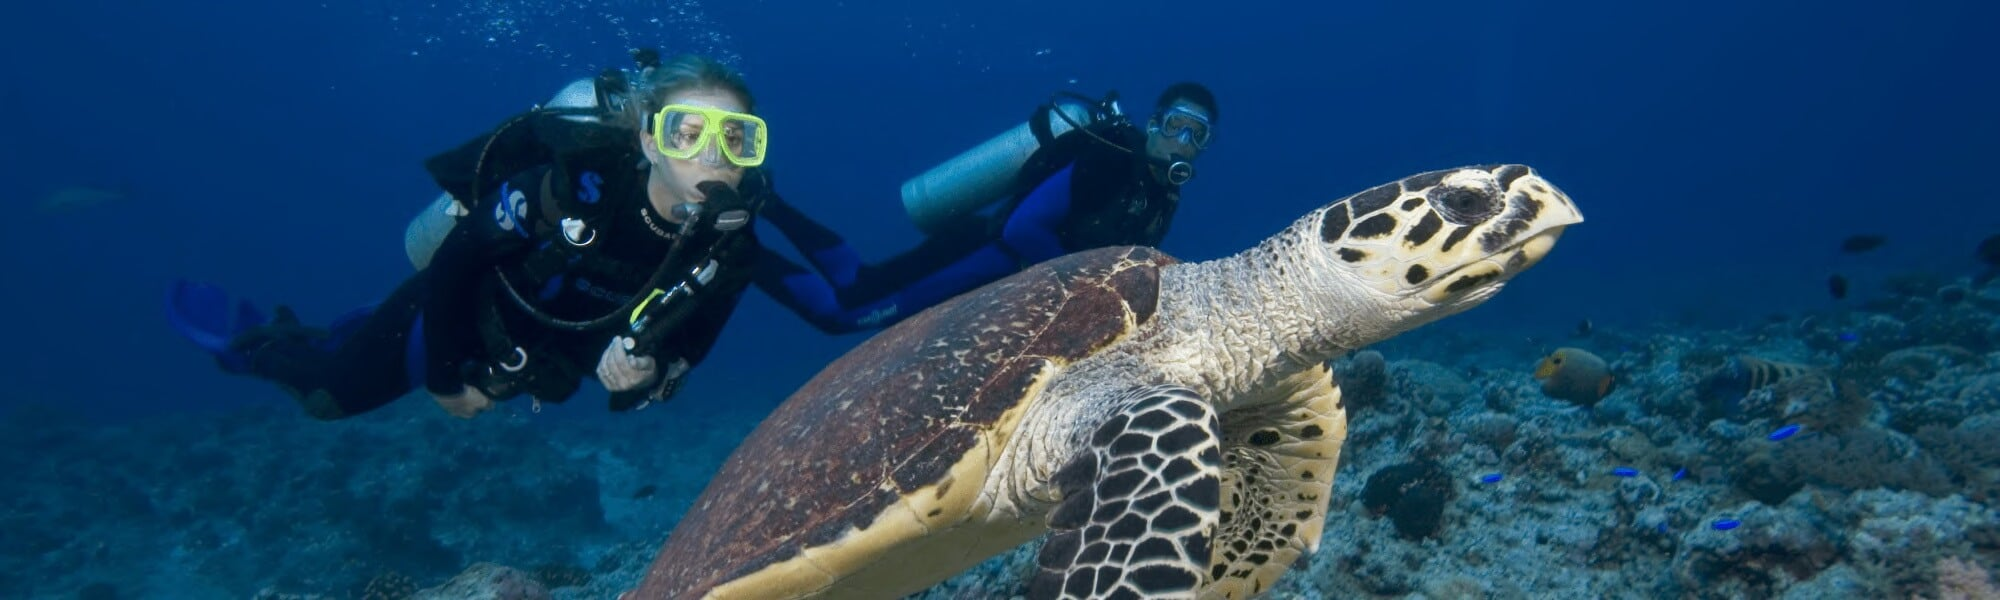 turtle easy divers cyprus